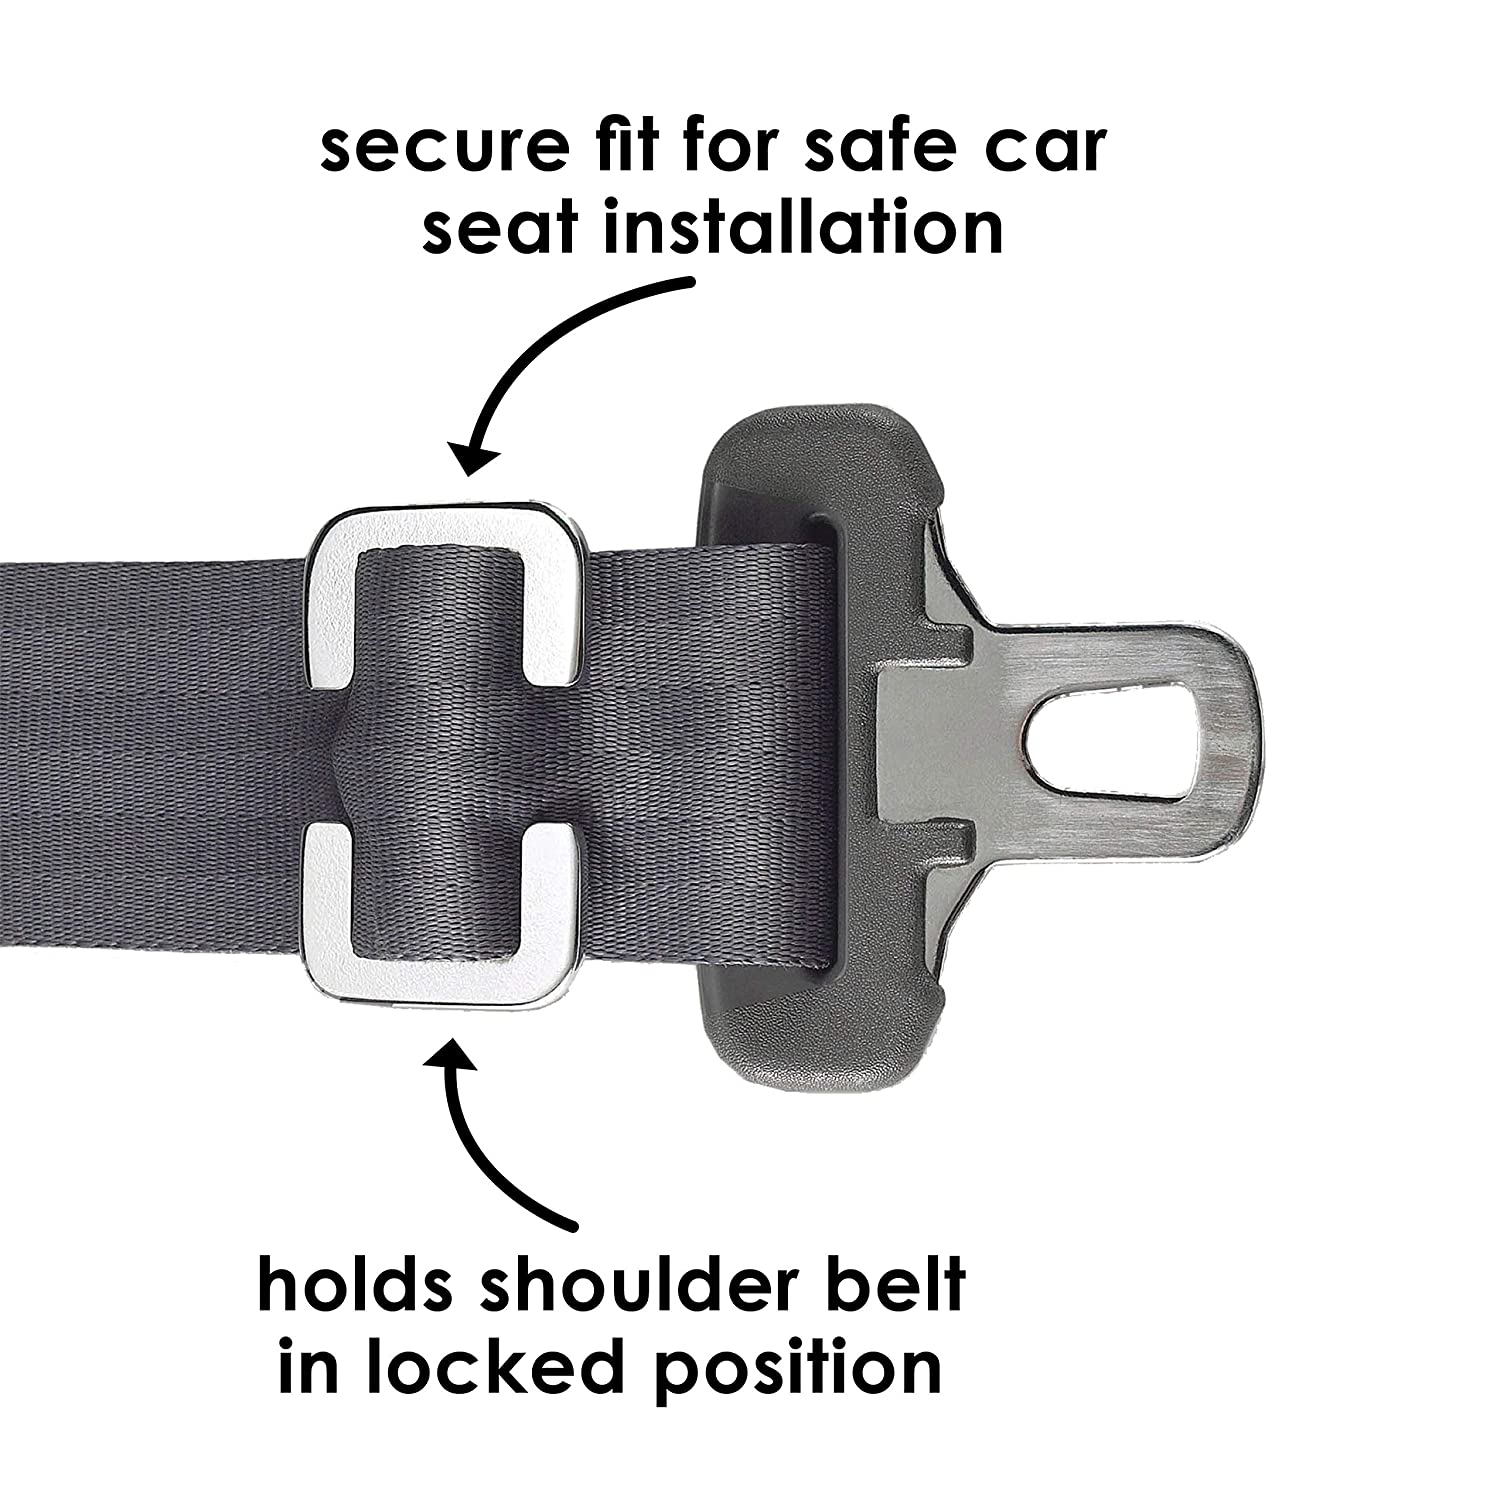 Morlike Silicone Seatbelt Secure Buckle Safety Cover Lock Light Blue, 2 Pack Buckle Guard Fits Almost Vehicles Keep Children Safe in Car Seat and Prevent Kids from Accidentally Unbuckling